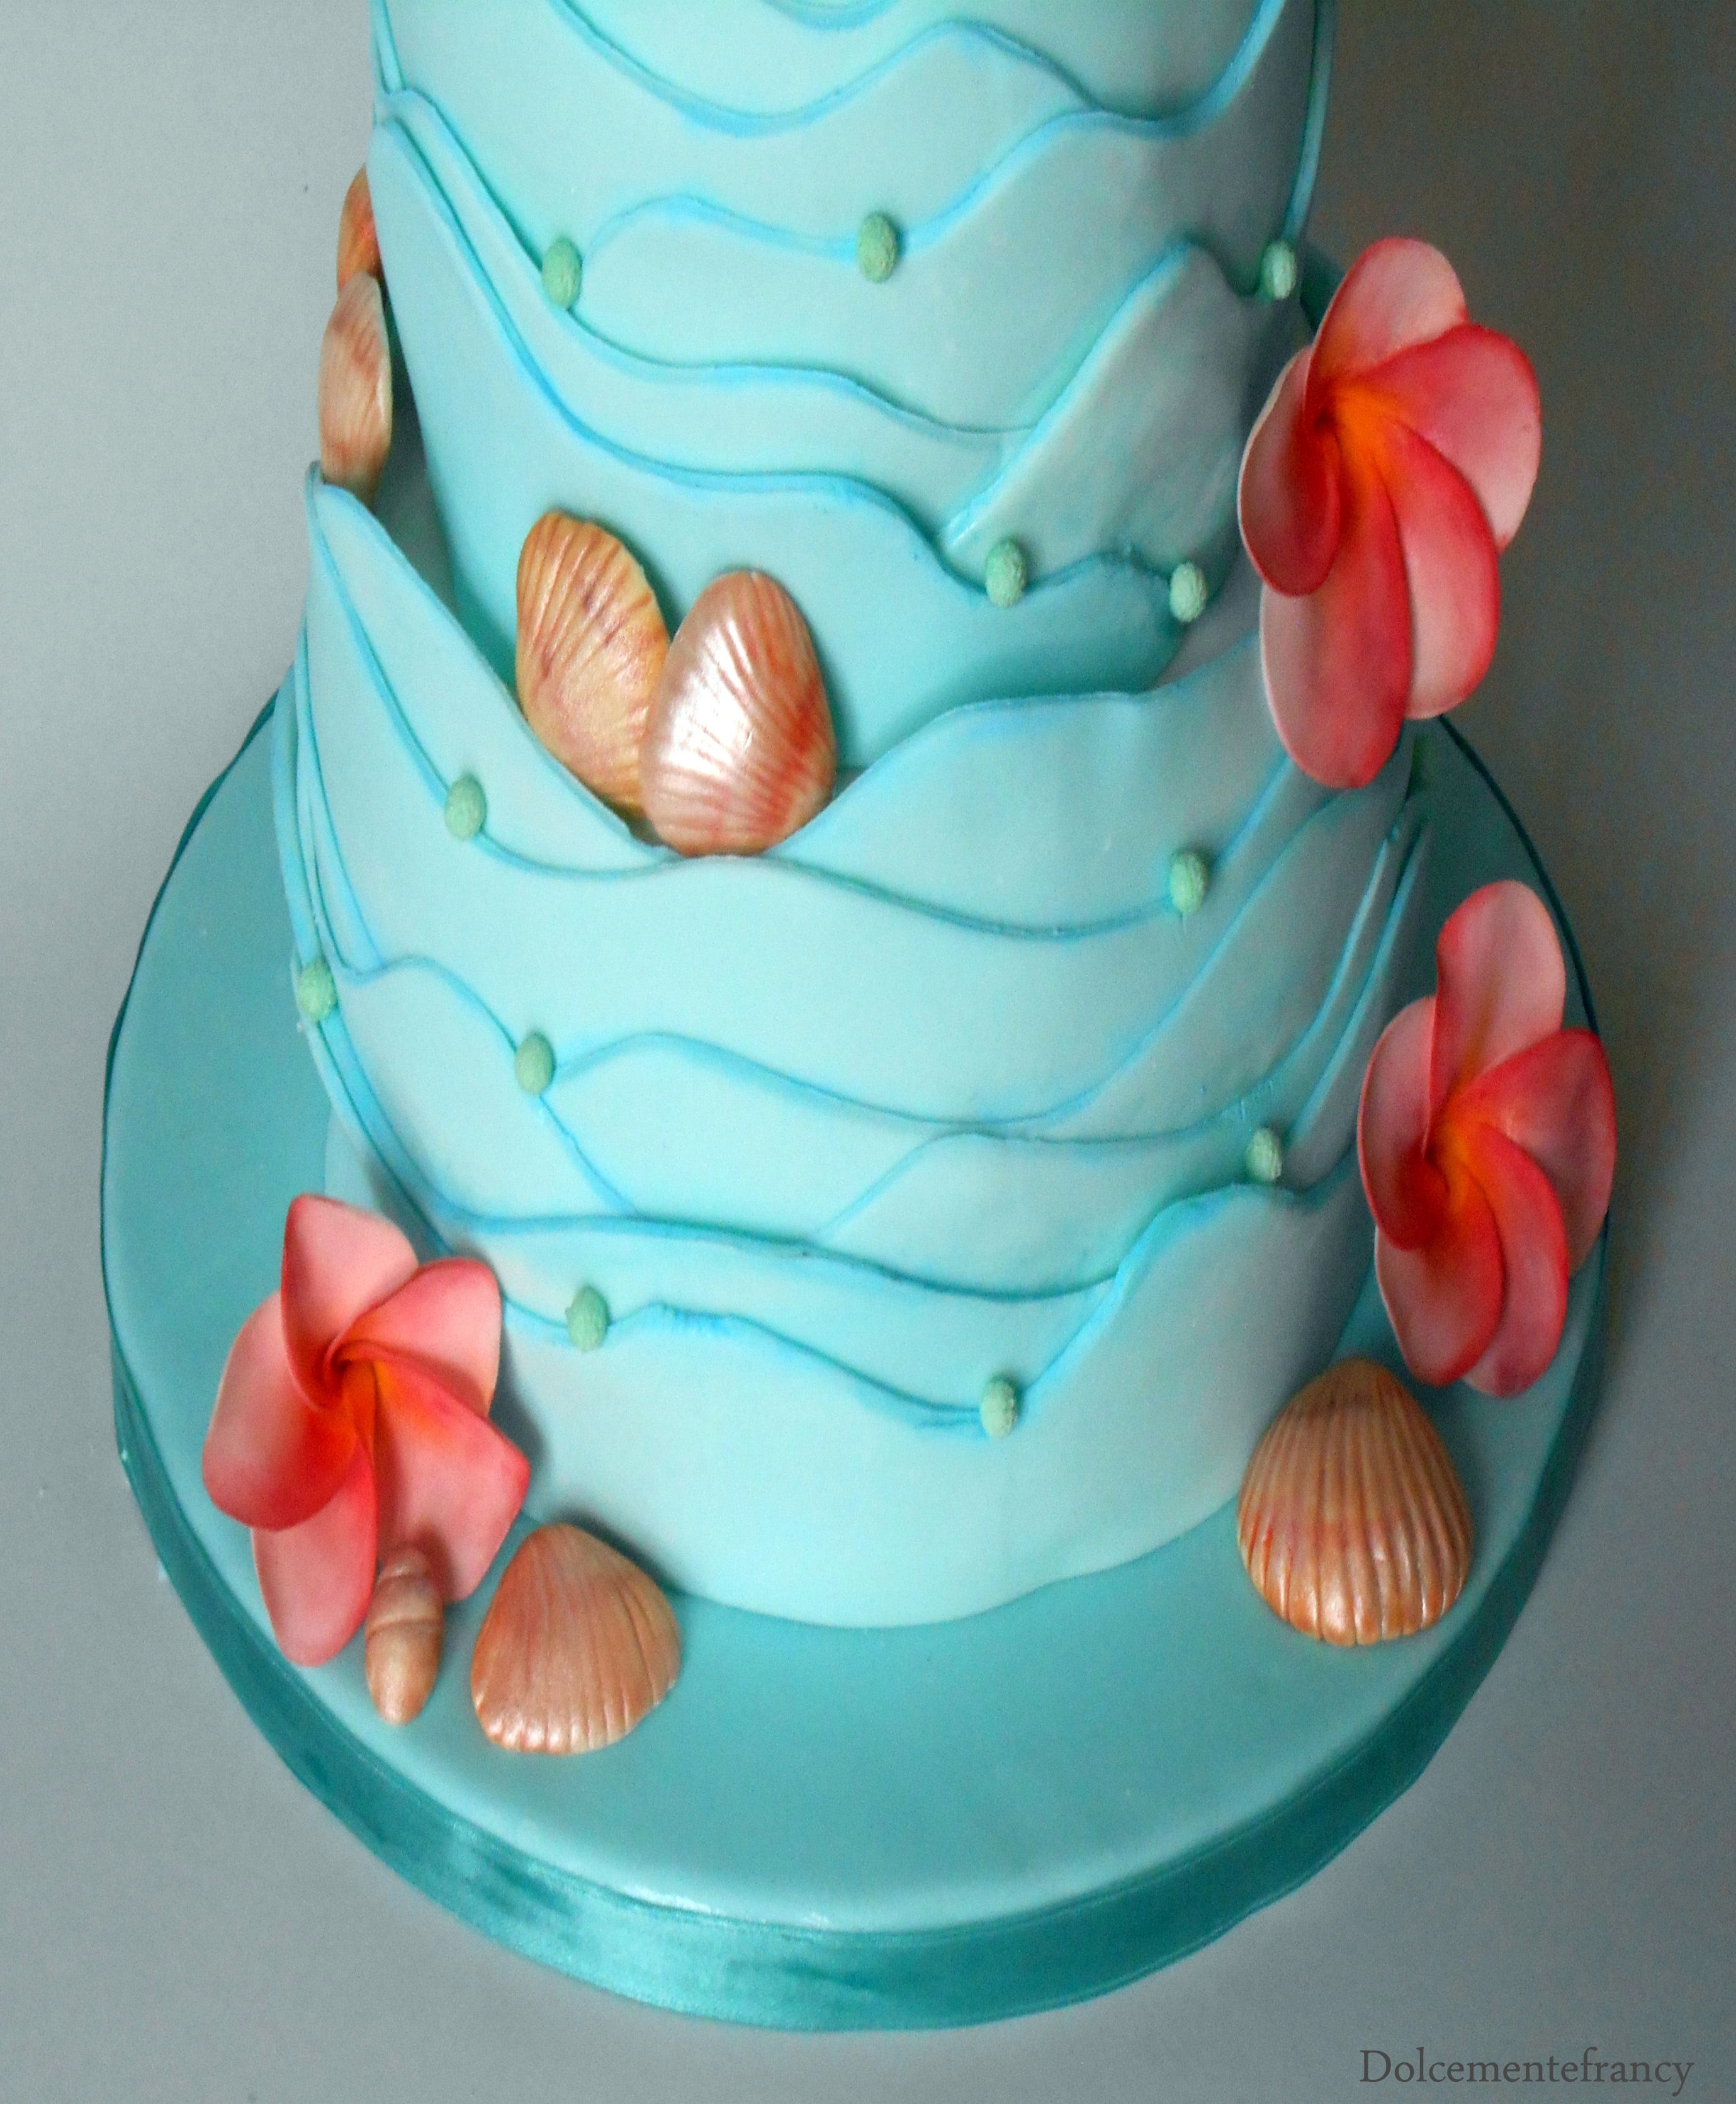 Edible Themed Cake Decoration : Caribbean Theme For This Two Storey Wedding Cake Covered ...